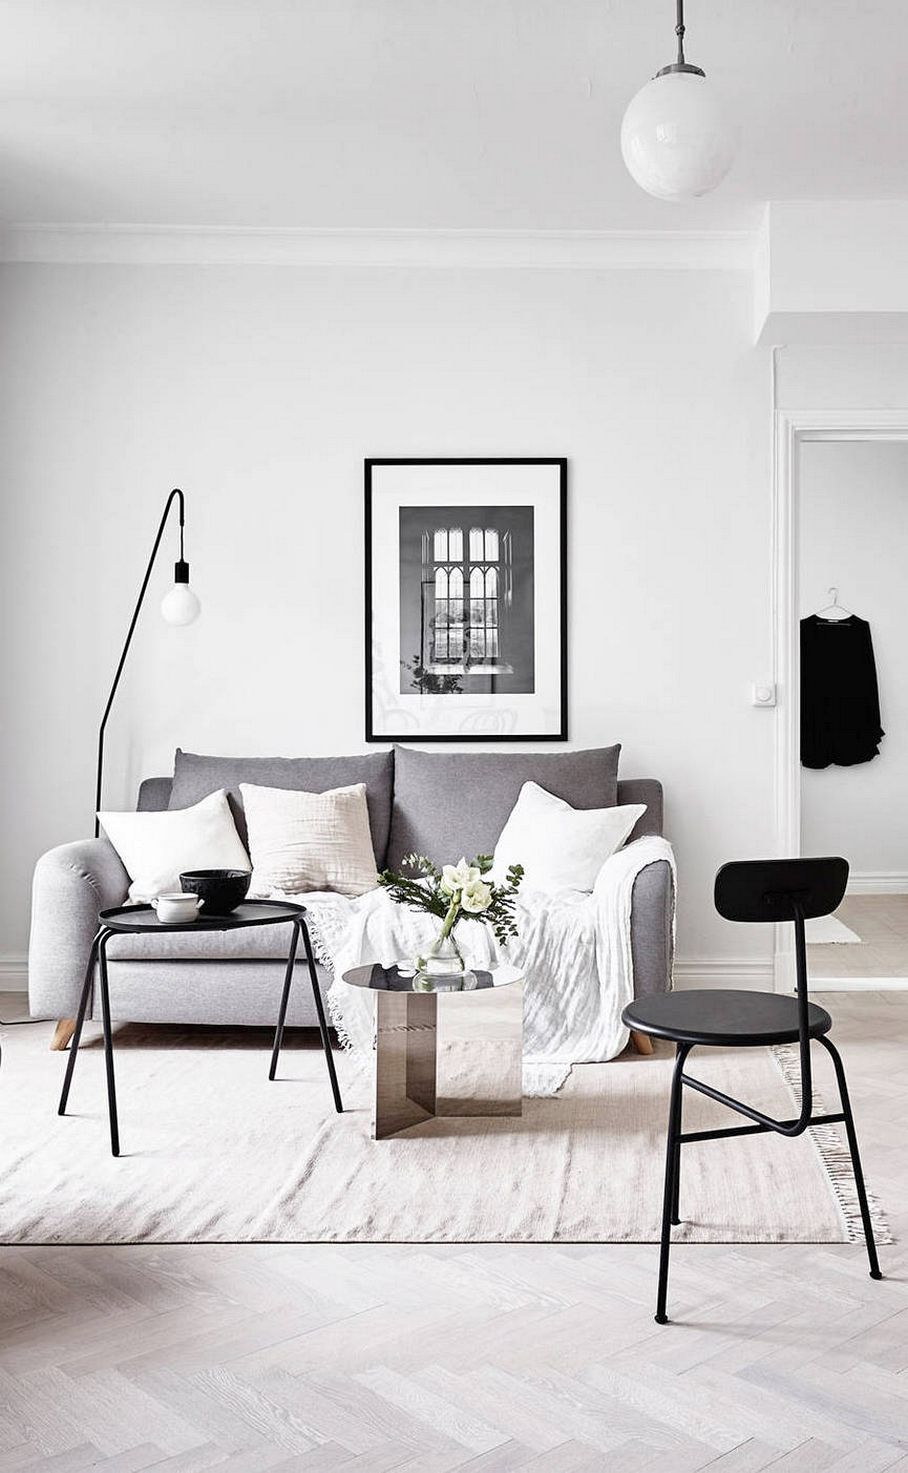 Adorable Living Room Modern and Minimalist : 101 Furniture Interior ...